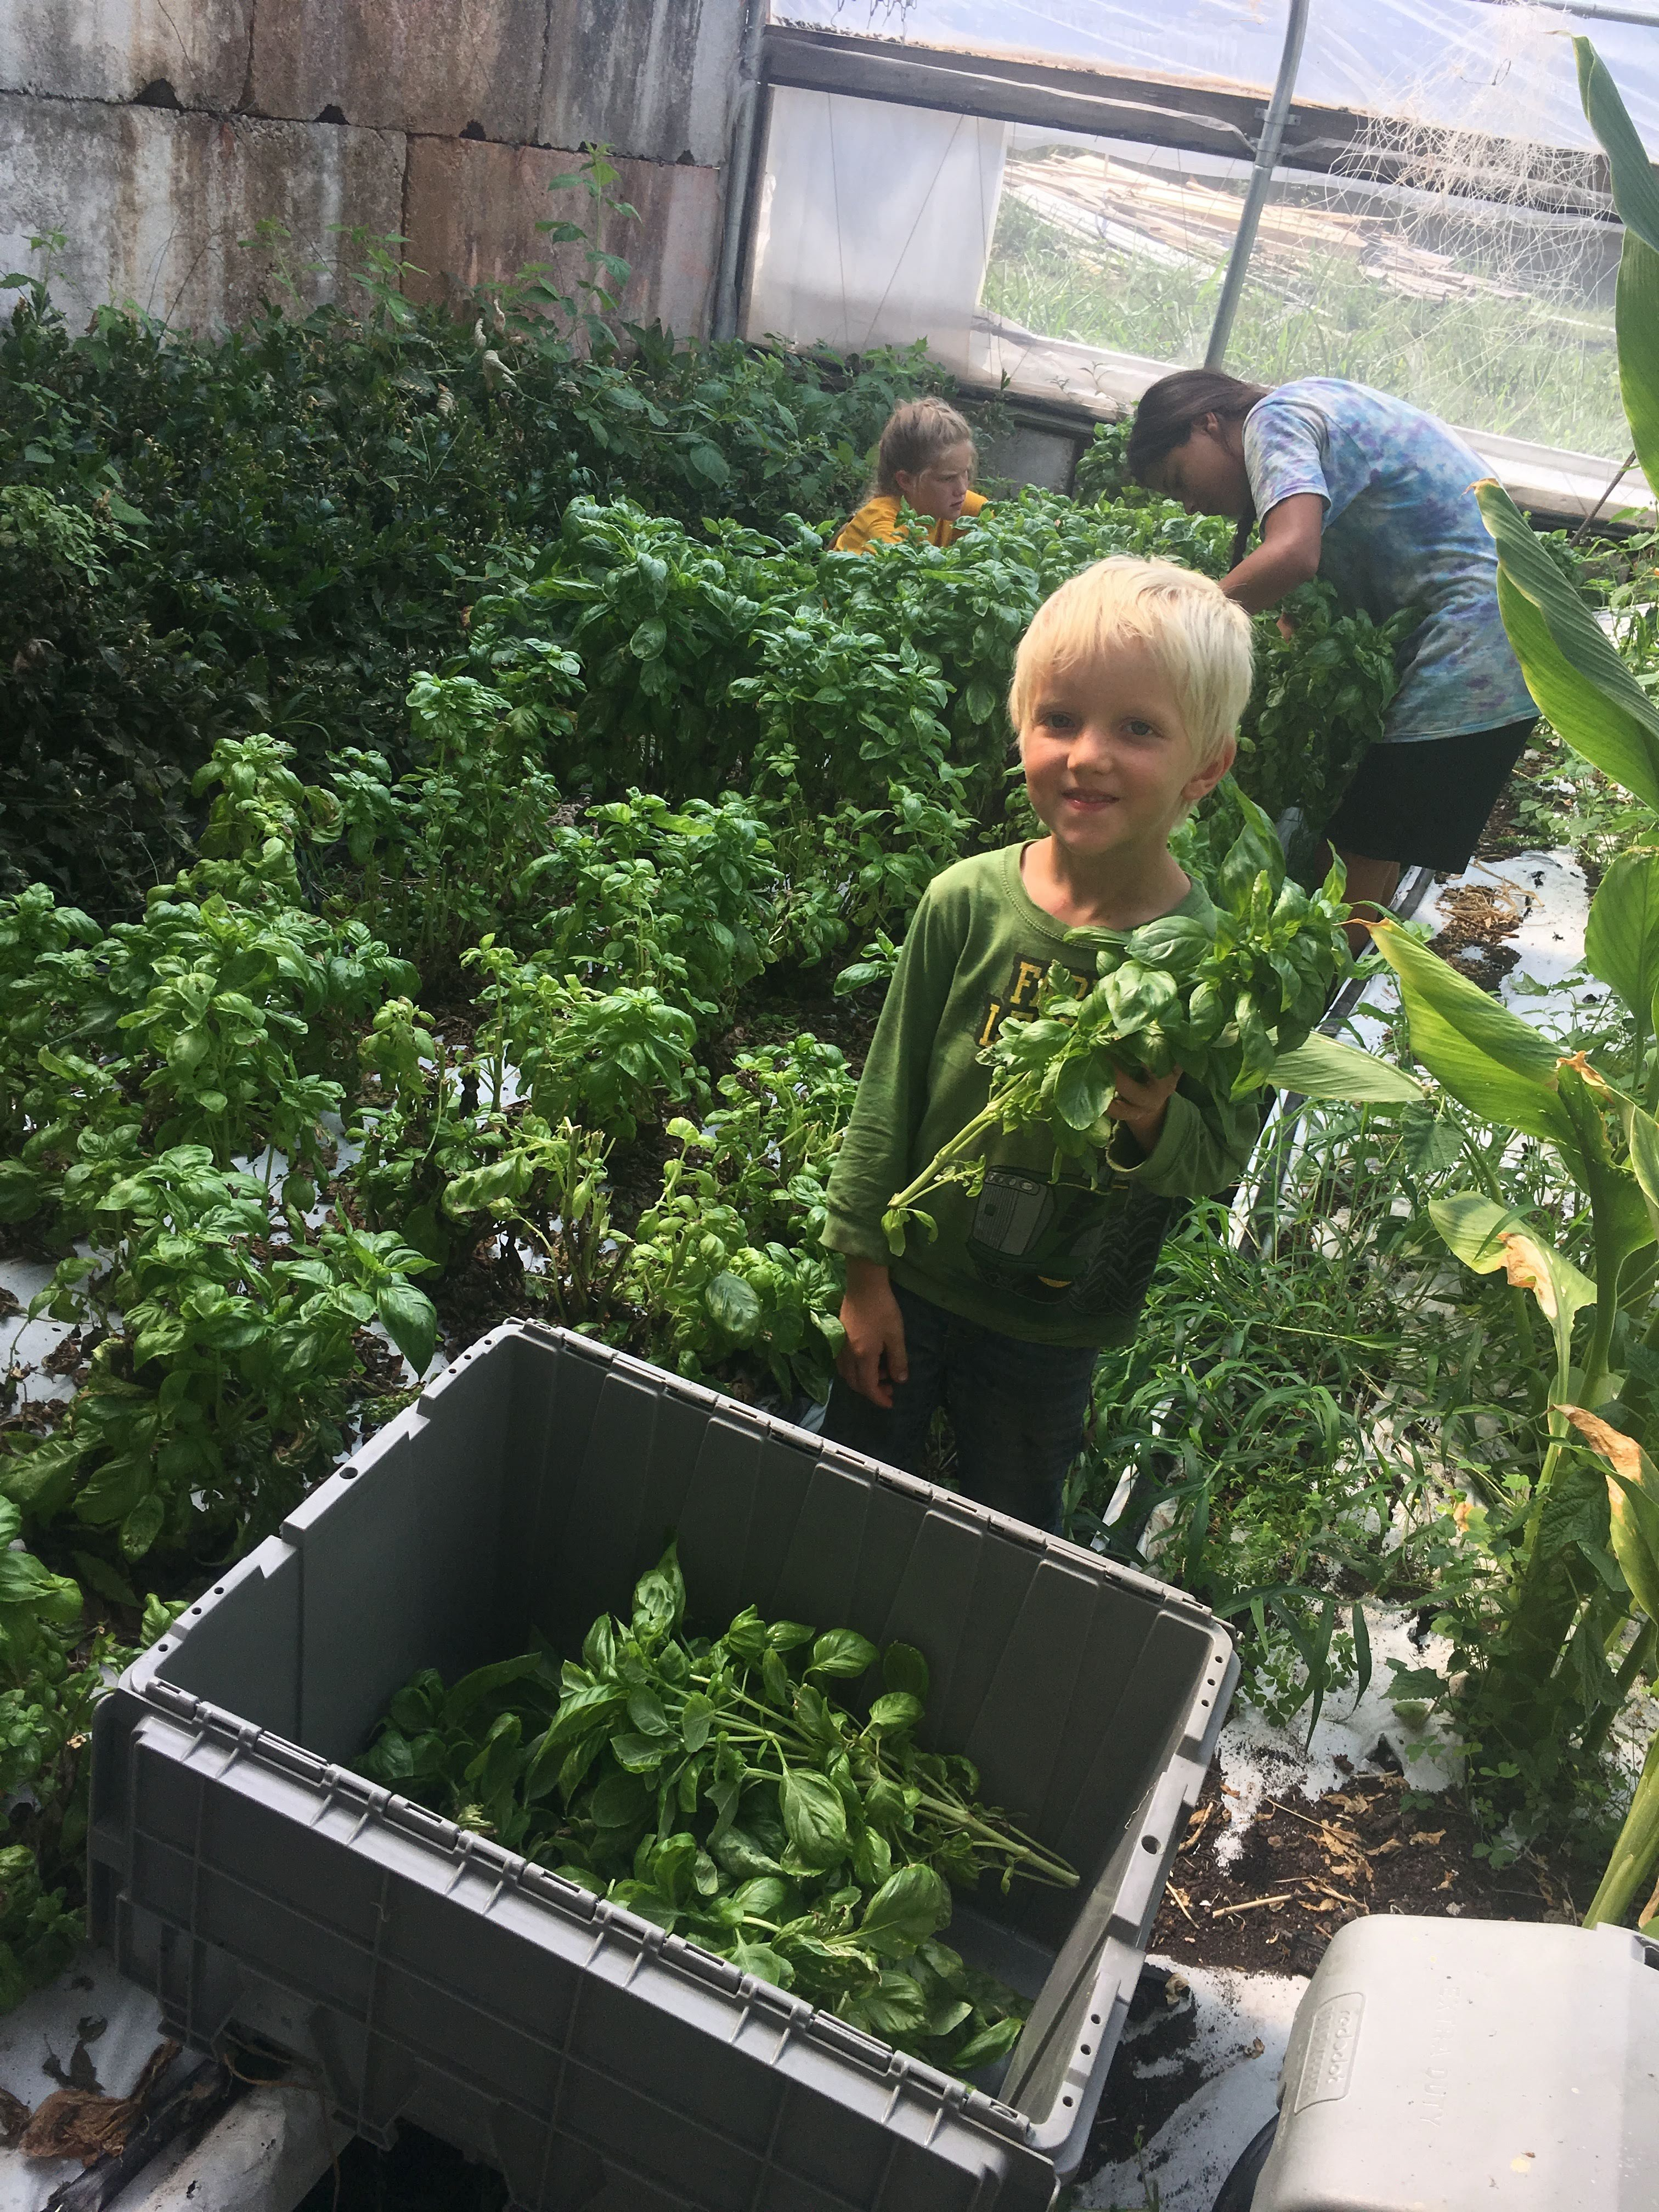 Planting For The Future, Harvesting For The Present